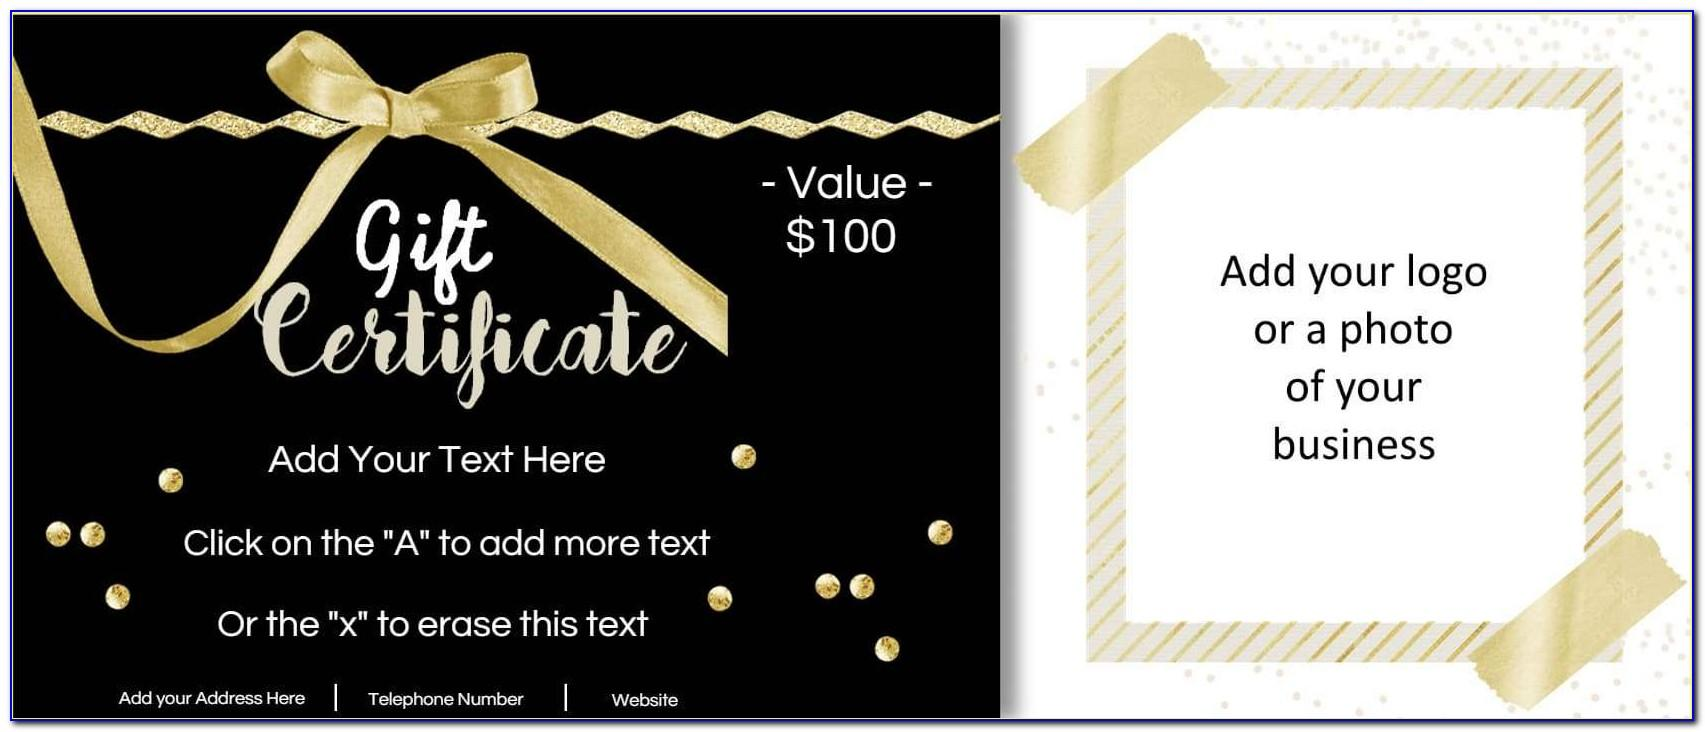 Free Business Gift Certificate Template With Logo